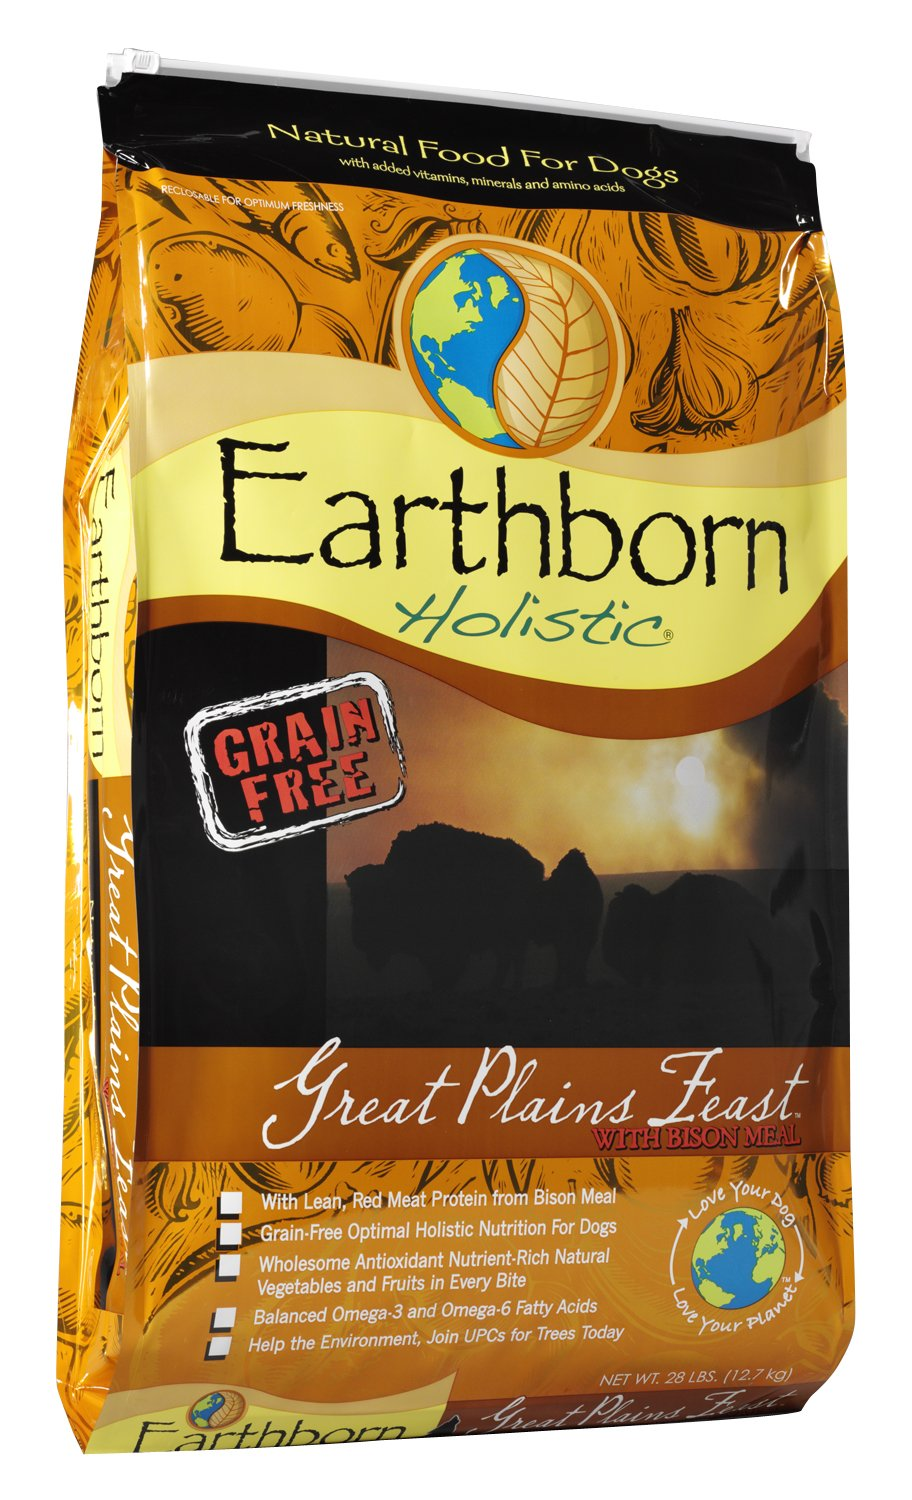 Is Earthborn Dog Food Good For Pitbulls